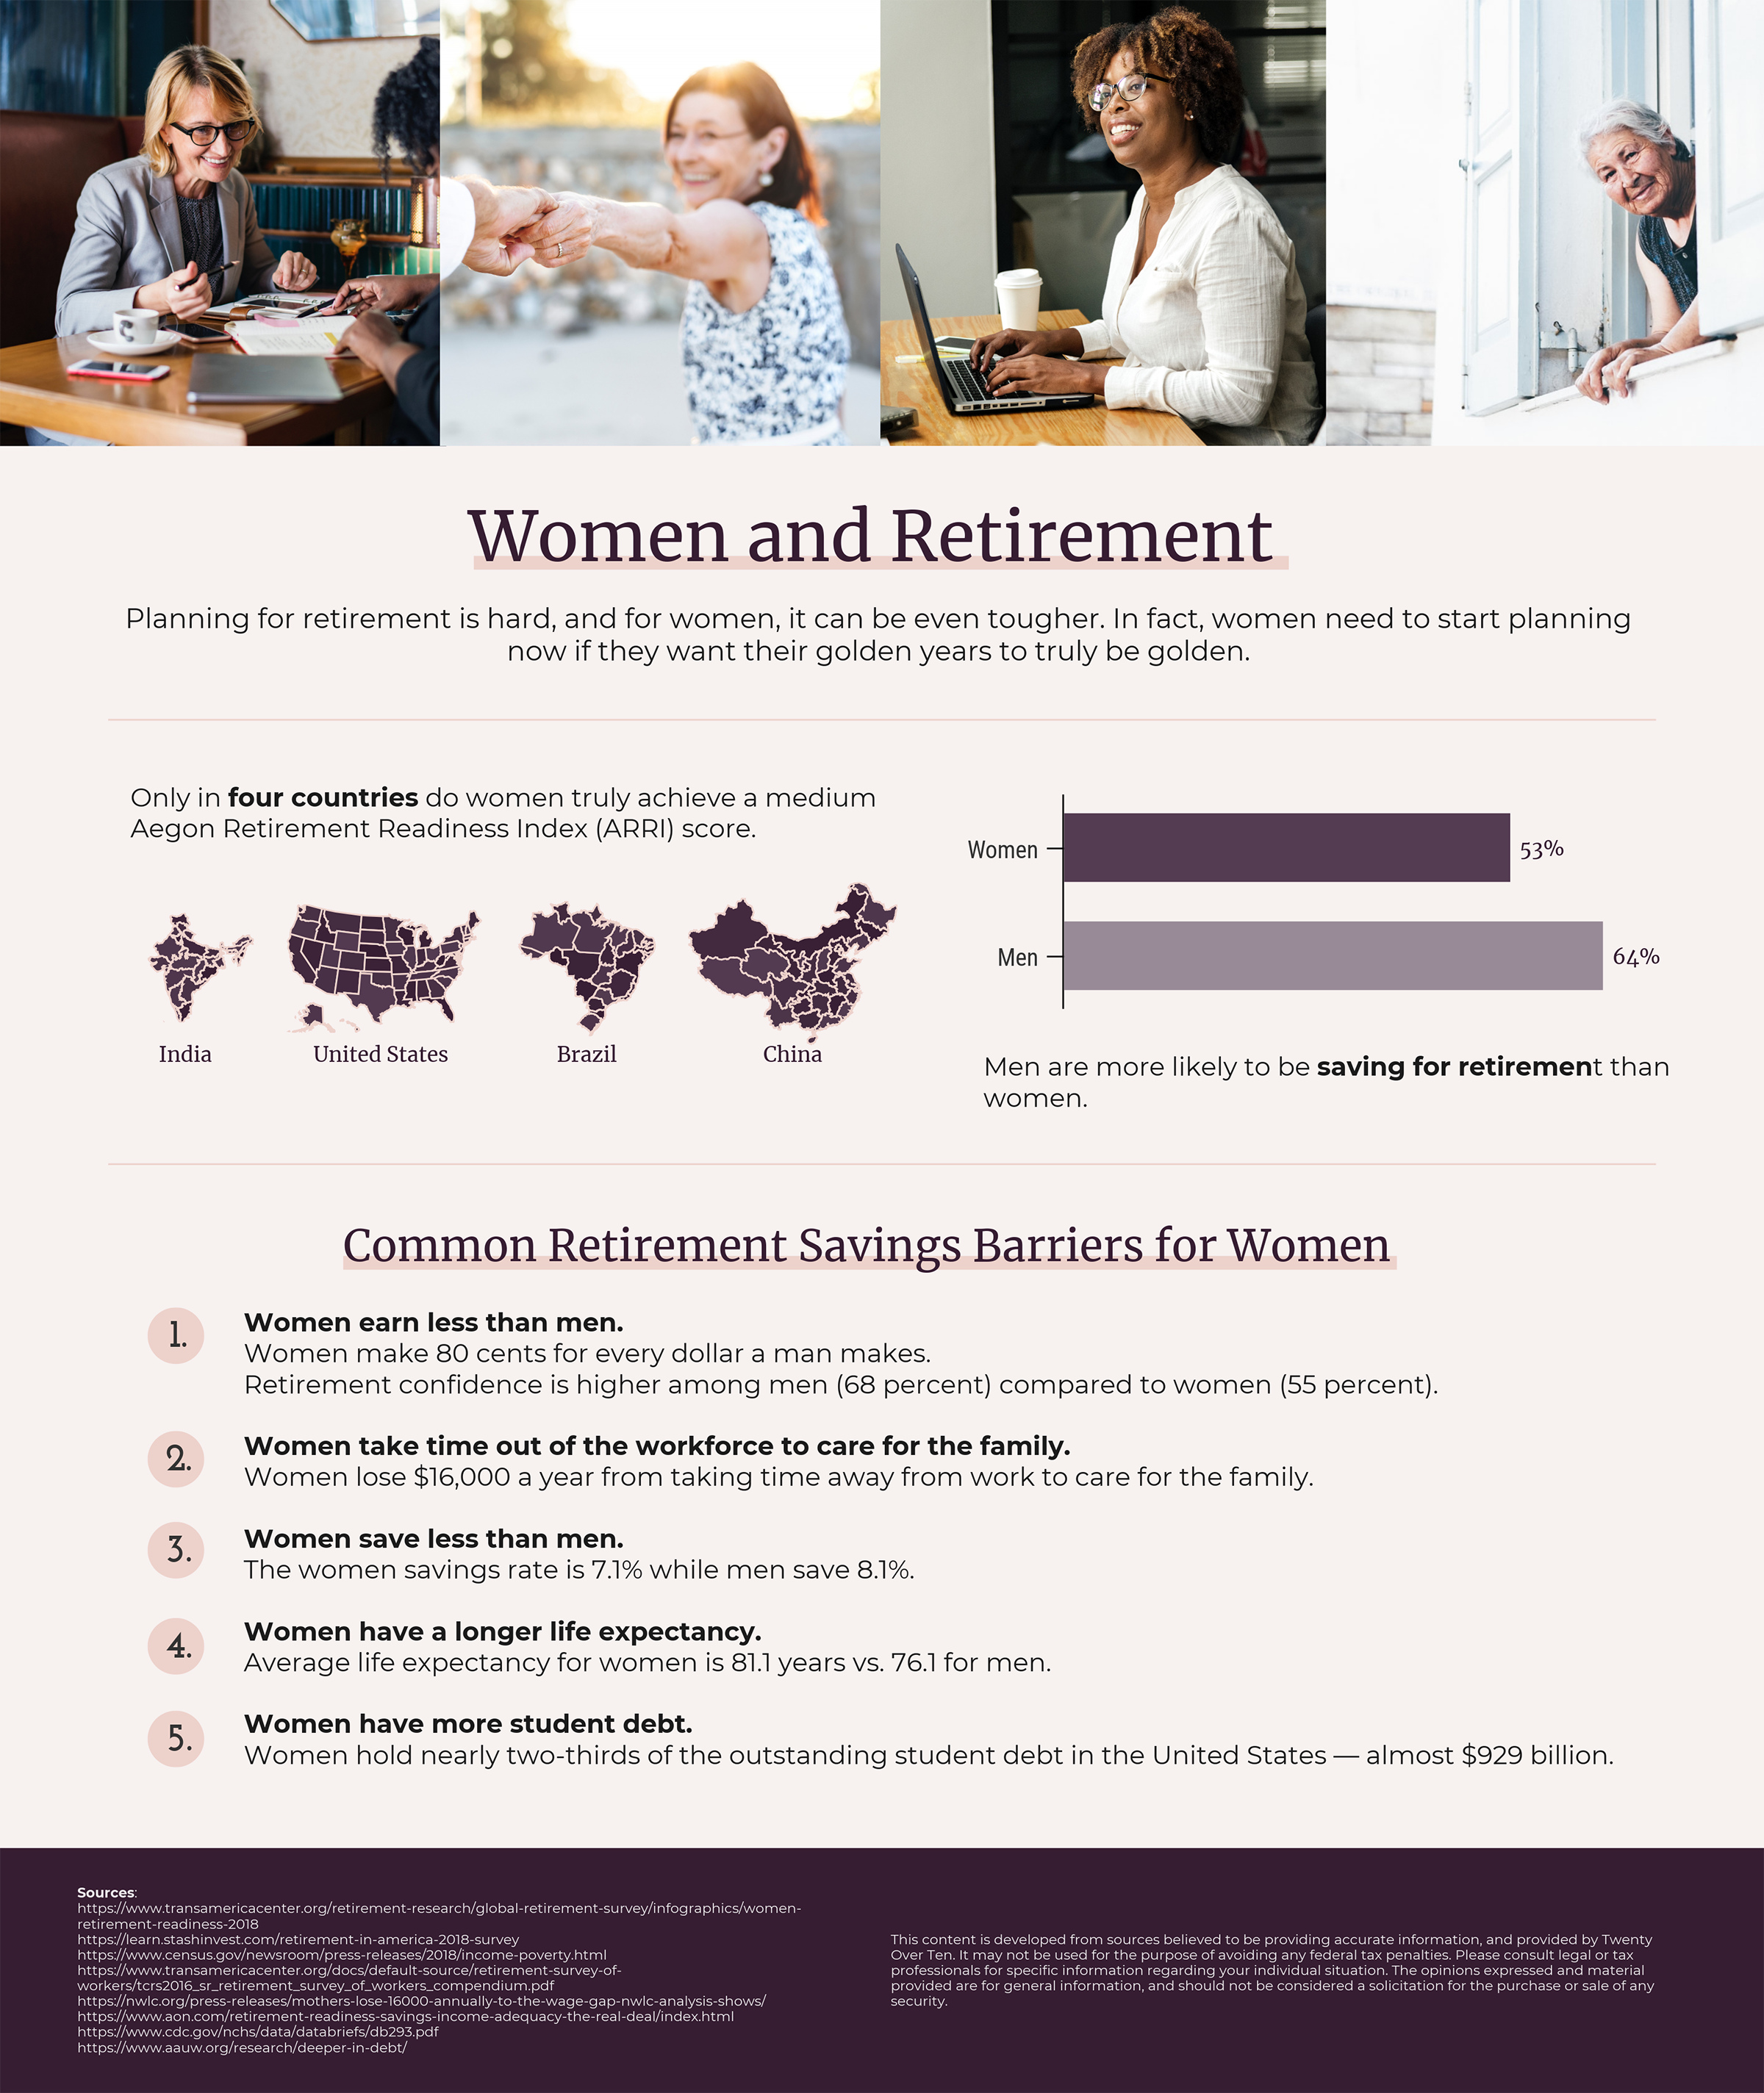 women and retirement infographic